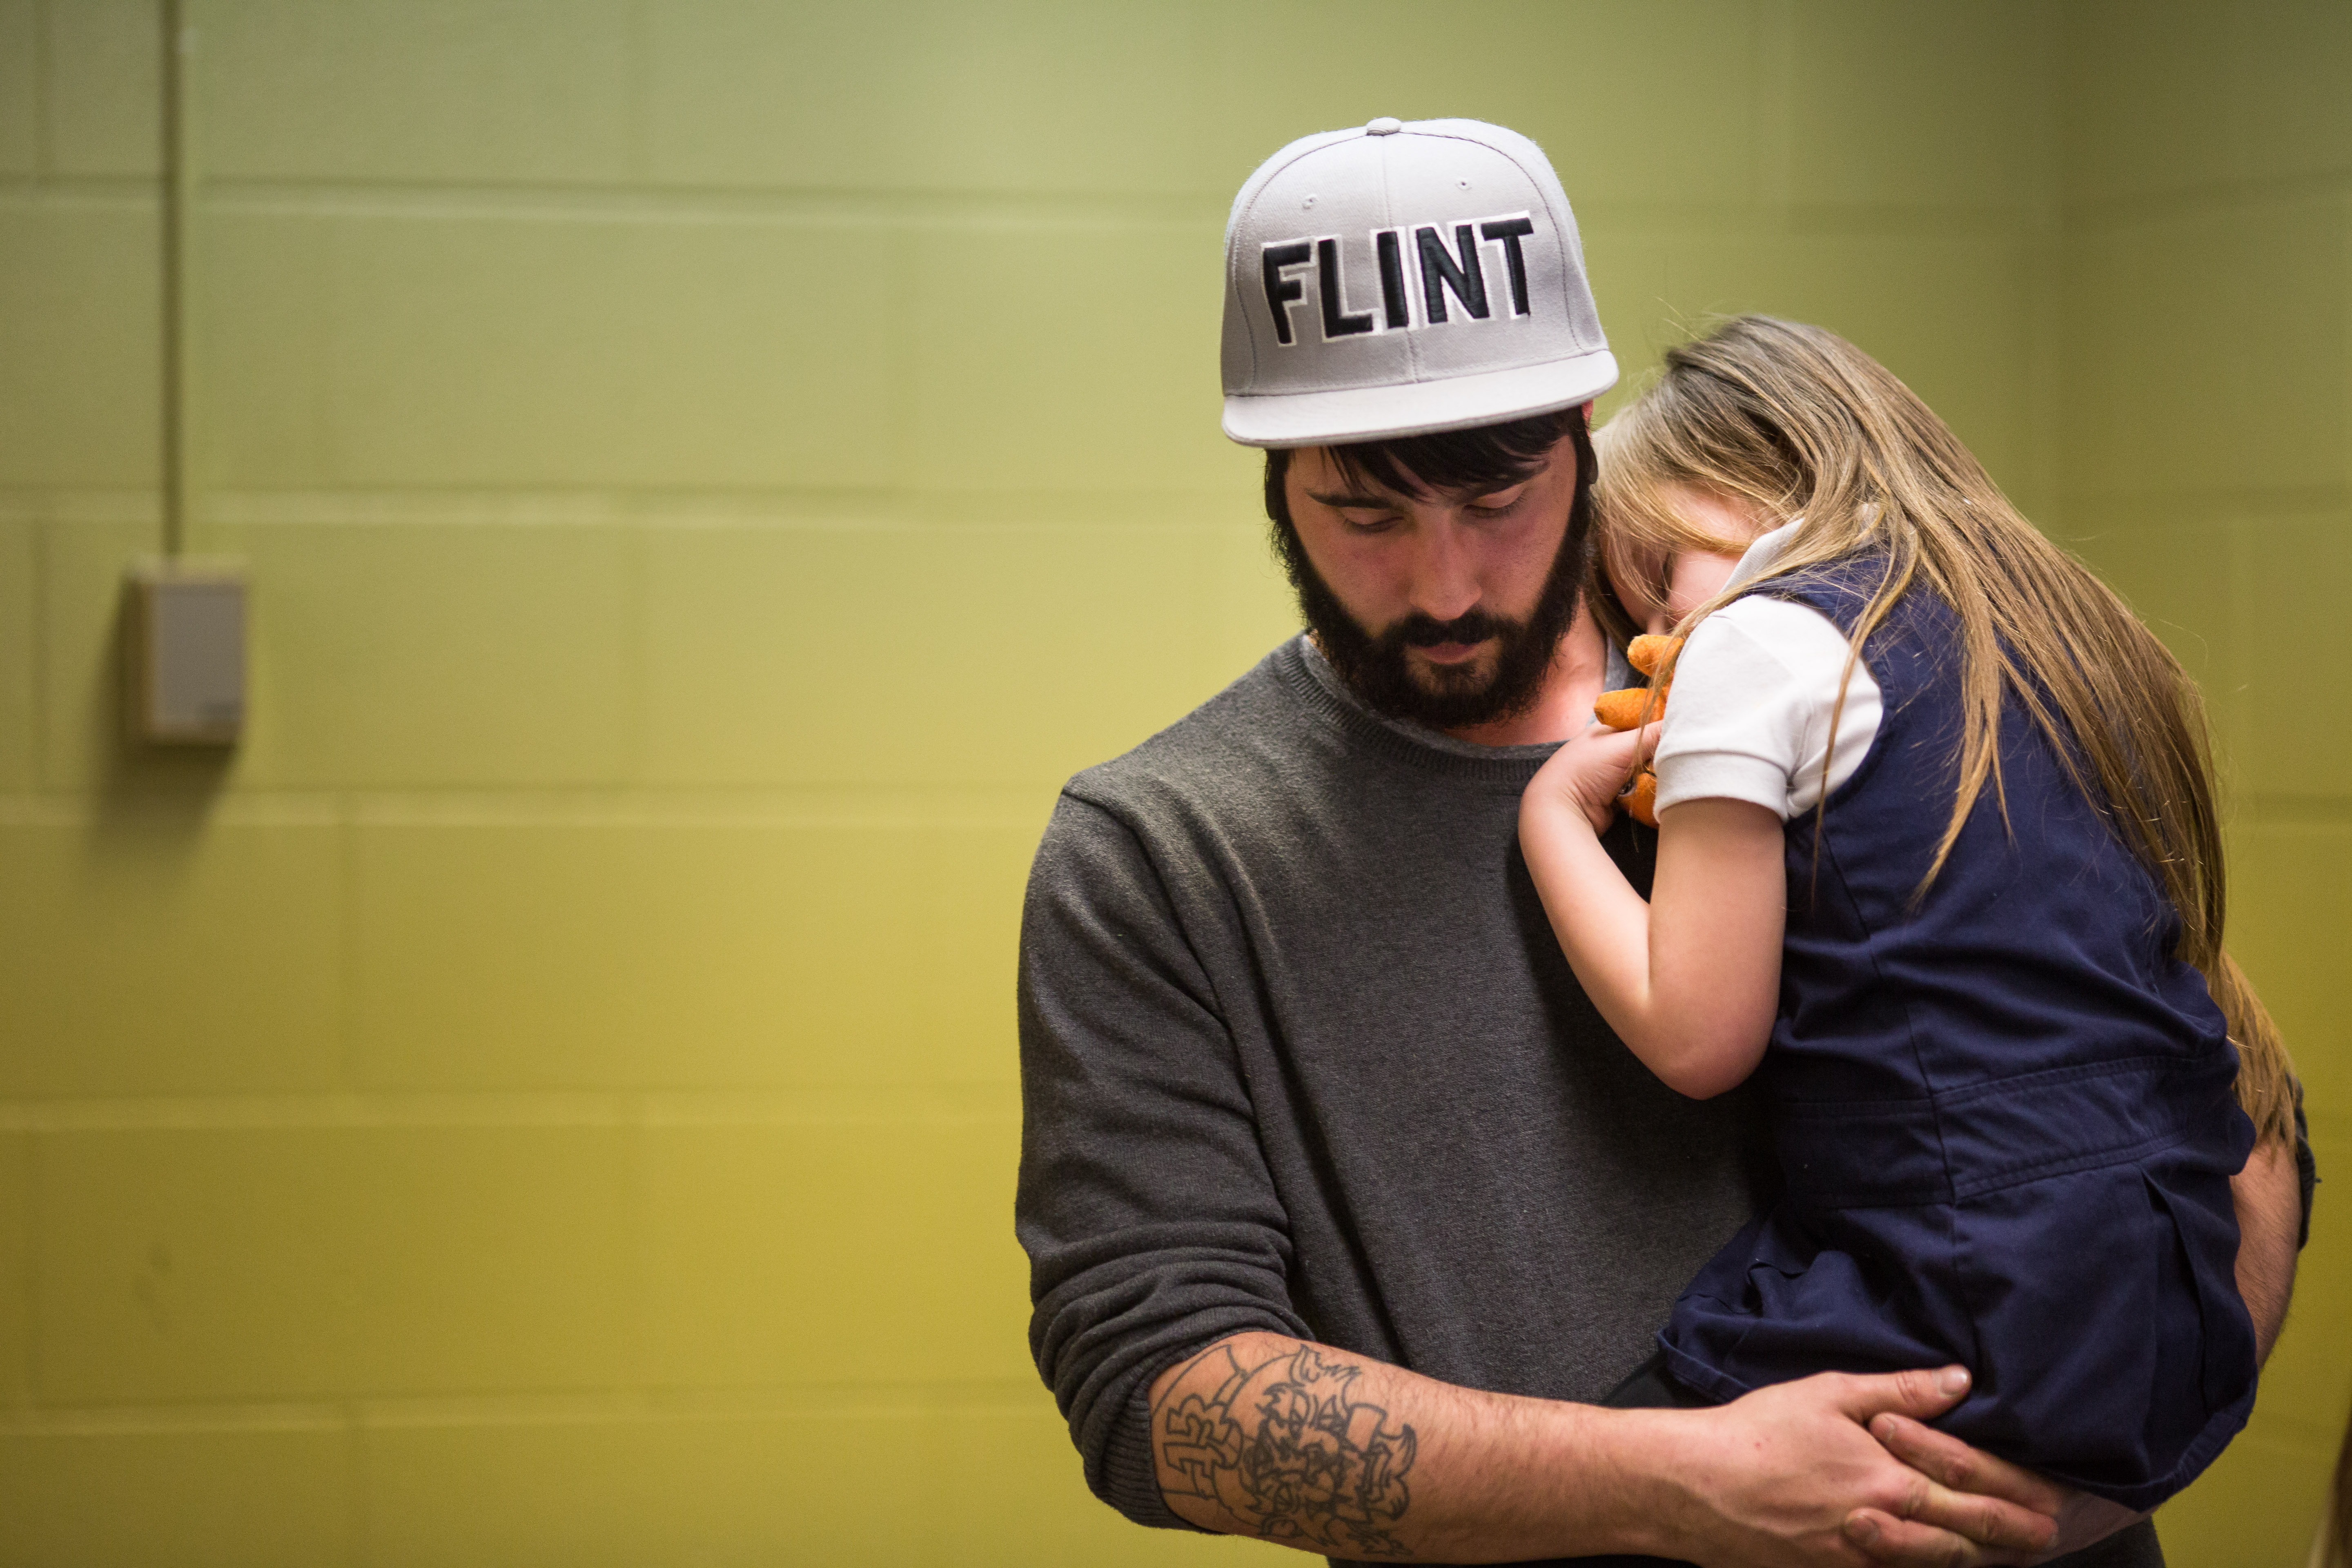 Matt Hopper holds his daughter after having her blood drawn to be tested for lead, in Flint, on Jan. 26, 2016.